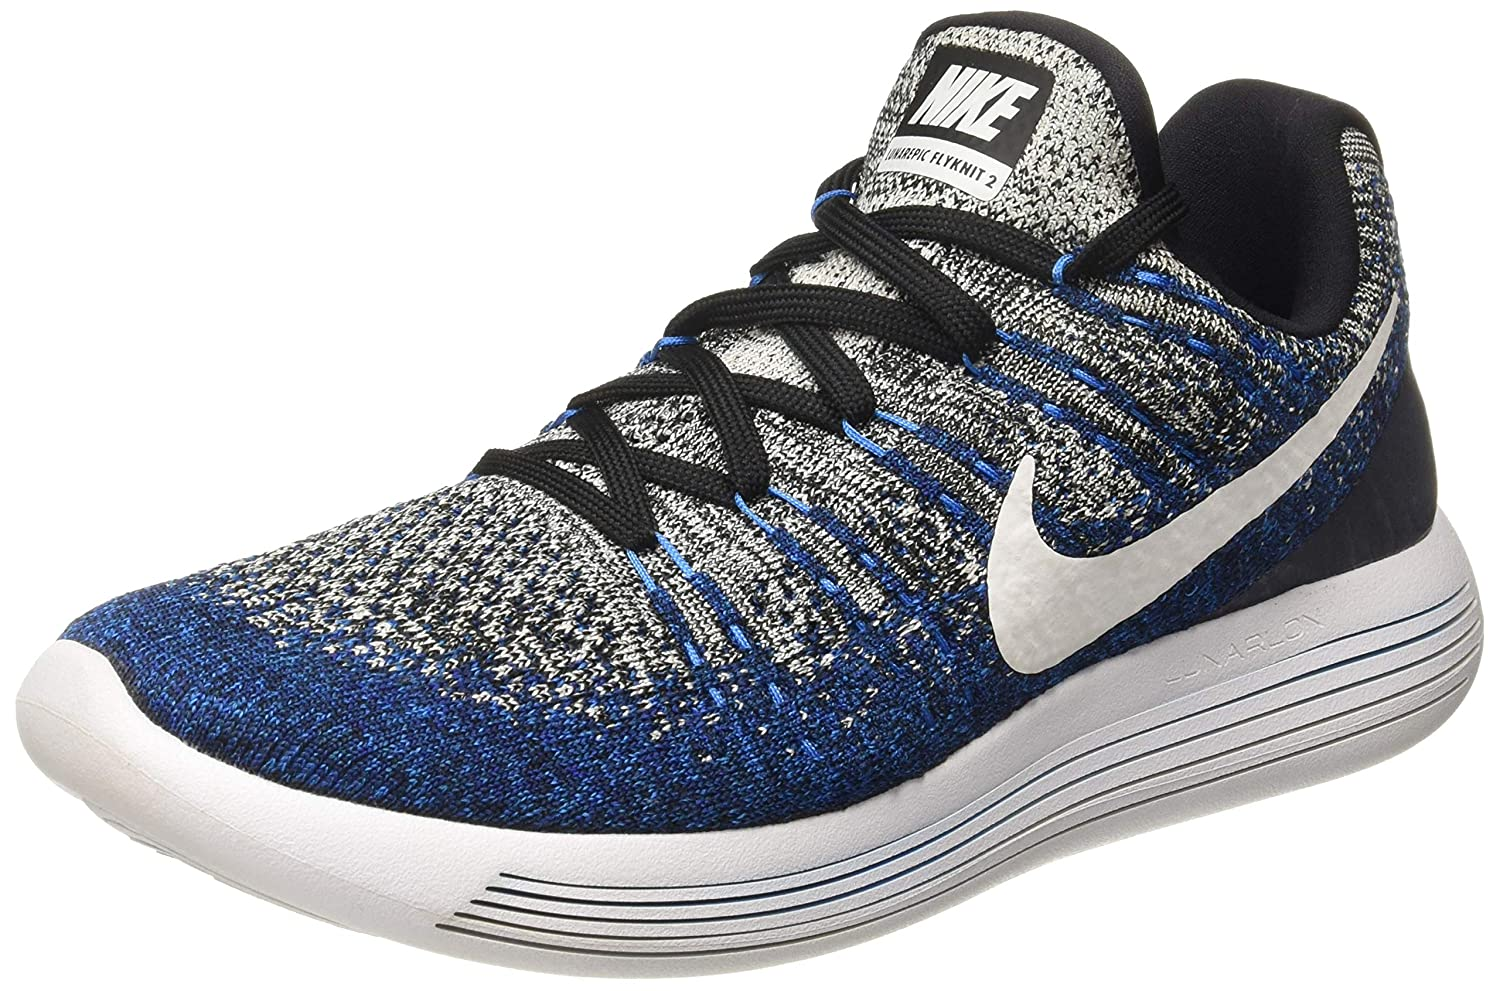 huge selection of c0008 d429f Nike Lunarepic Low Flyknit 2 Mens Road Running Shoes 863779-406 Size 8 D(M)  US